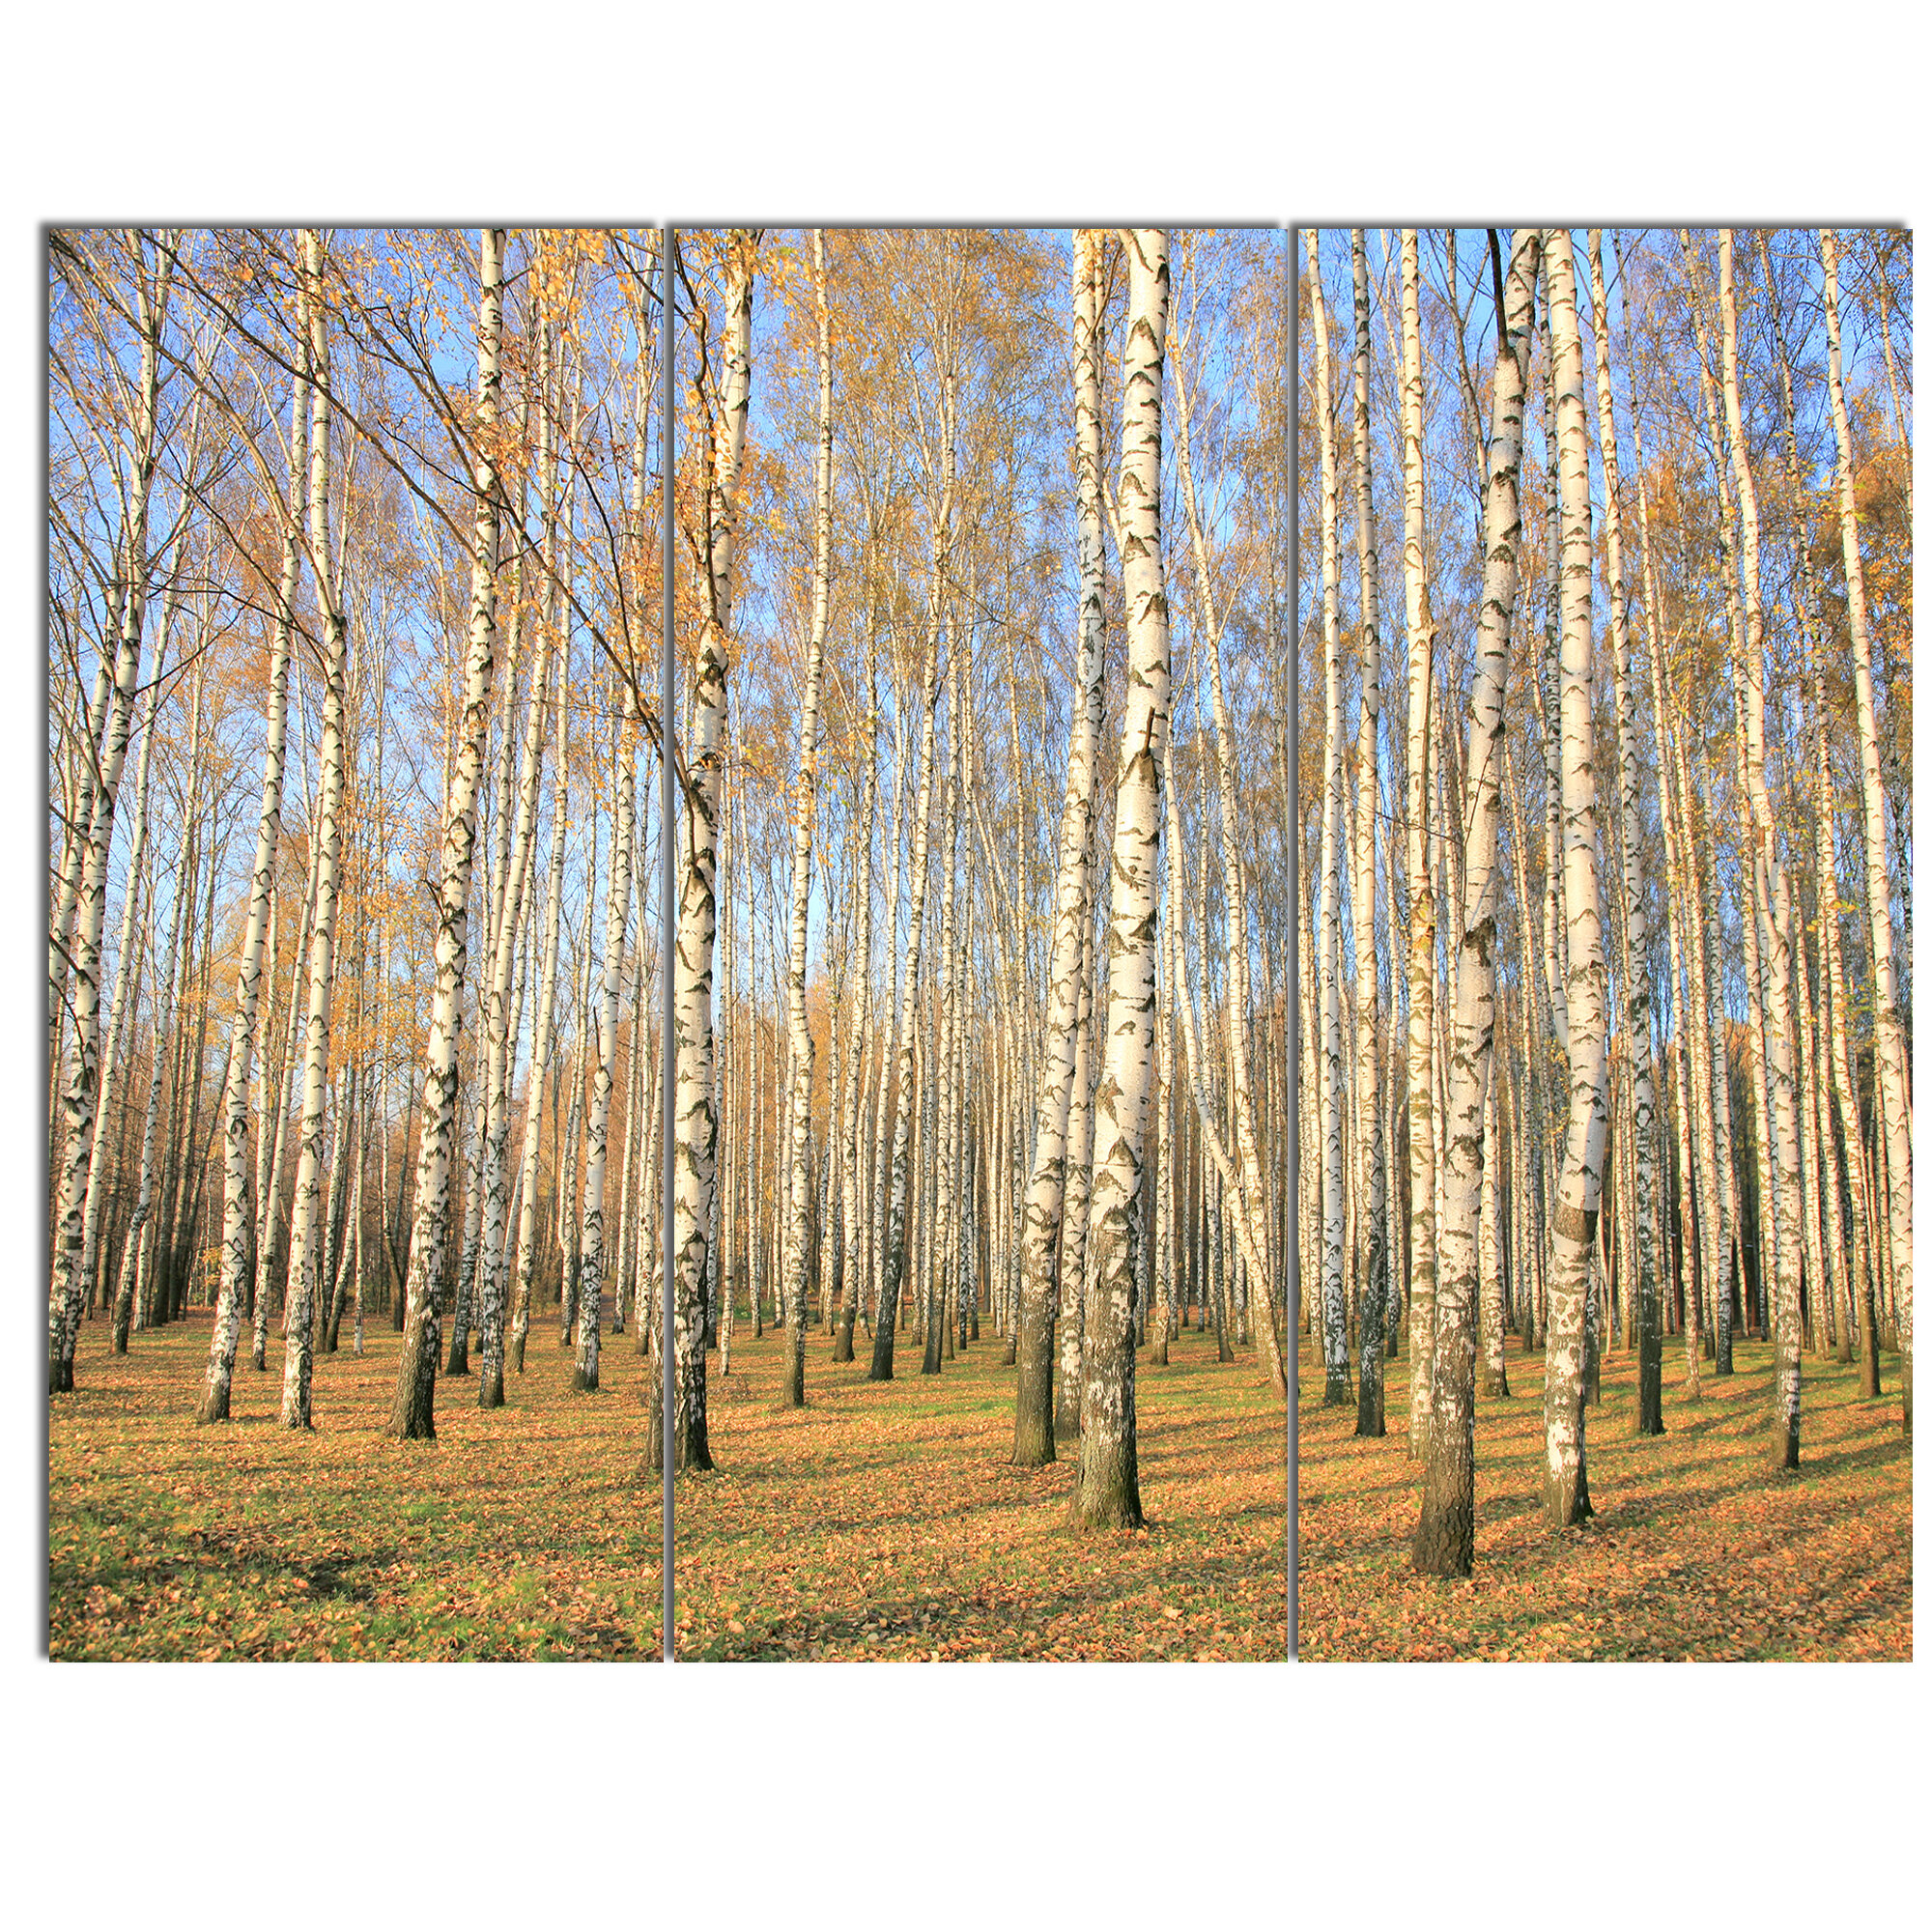 Designart Autumn Birch Grove In Sunlight 3 Piece Photographic Print On Wrapped Canvas Set Wayfair